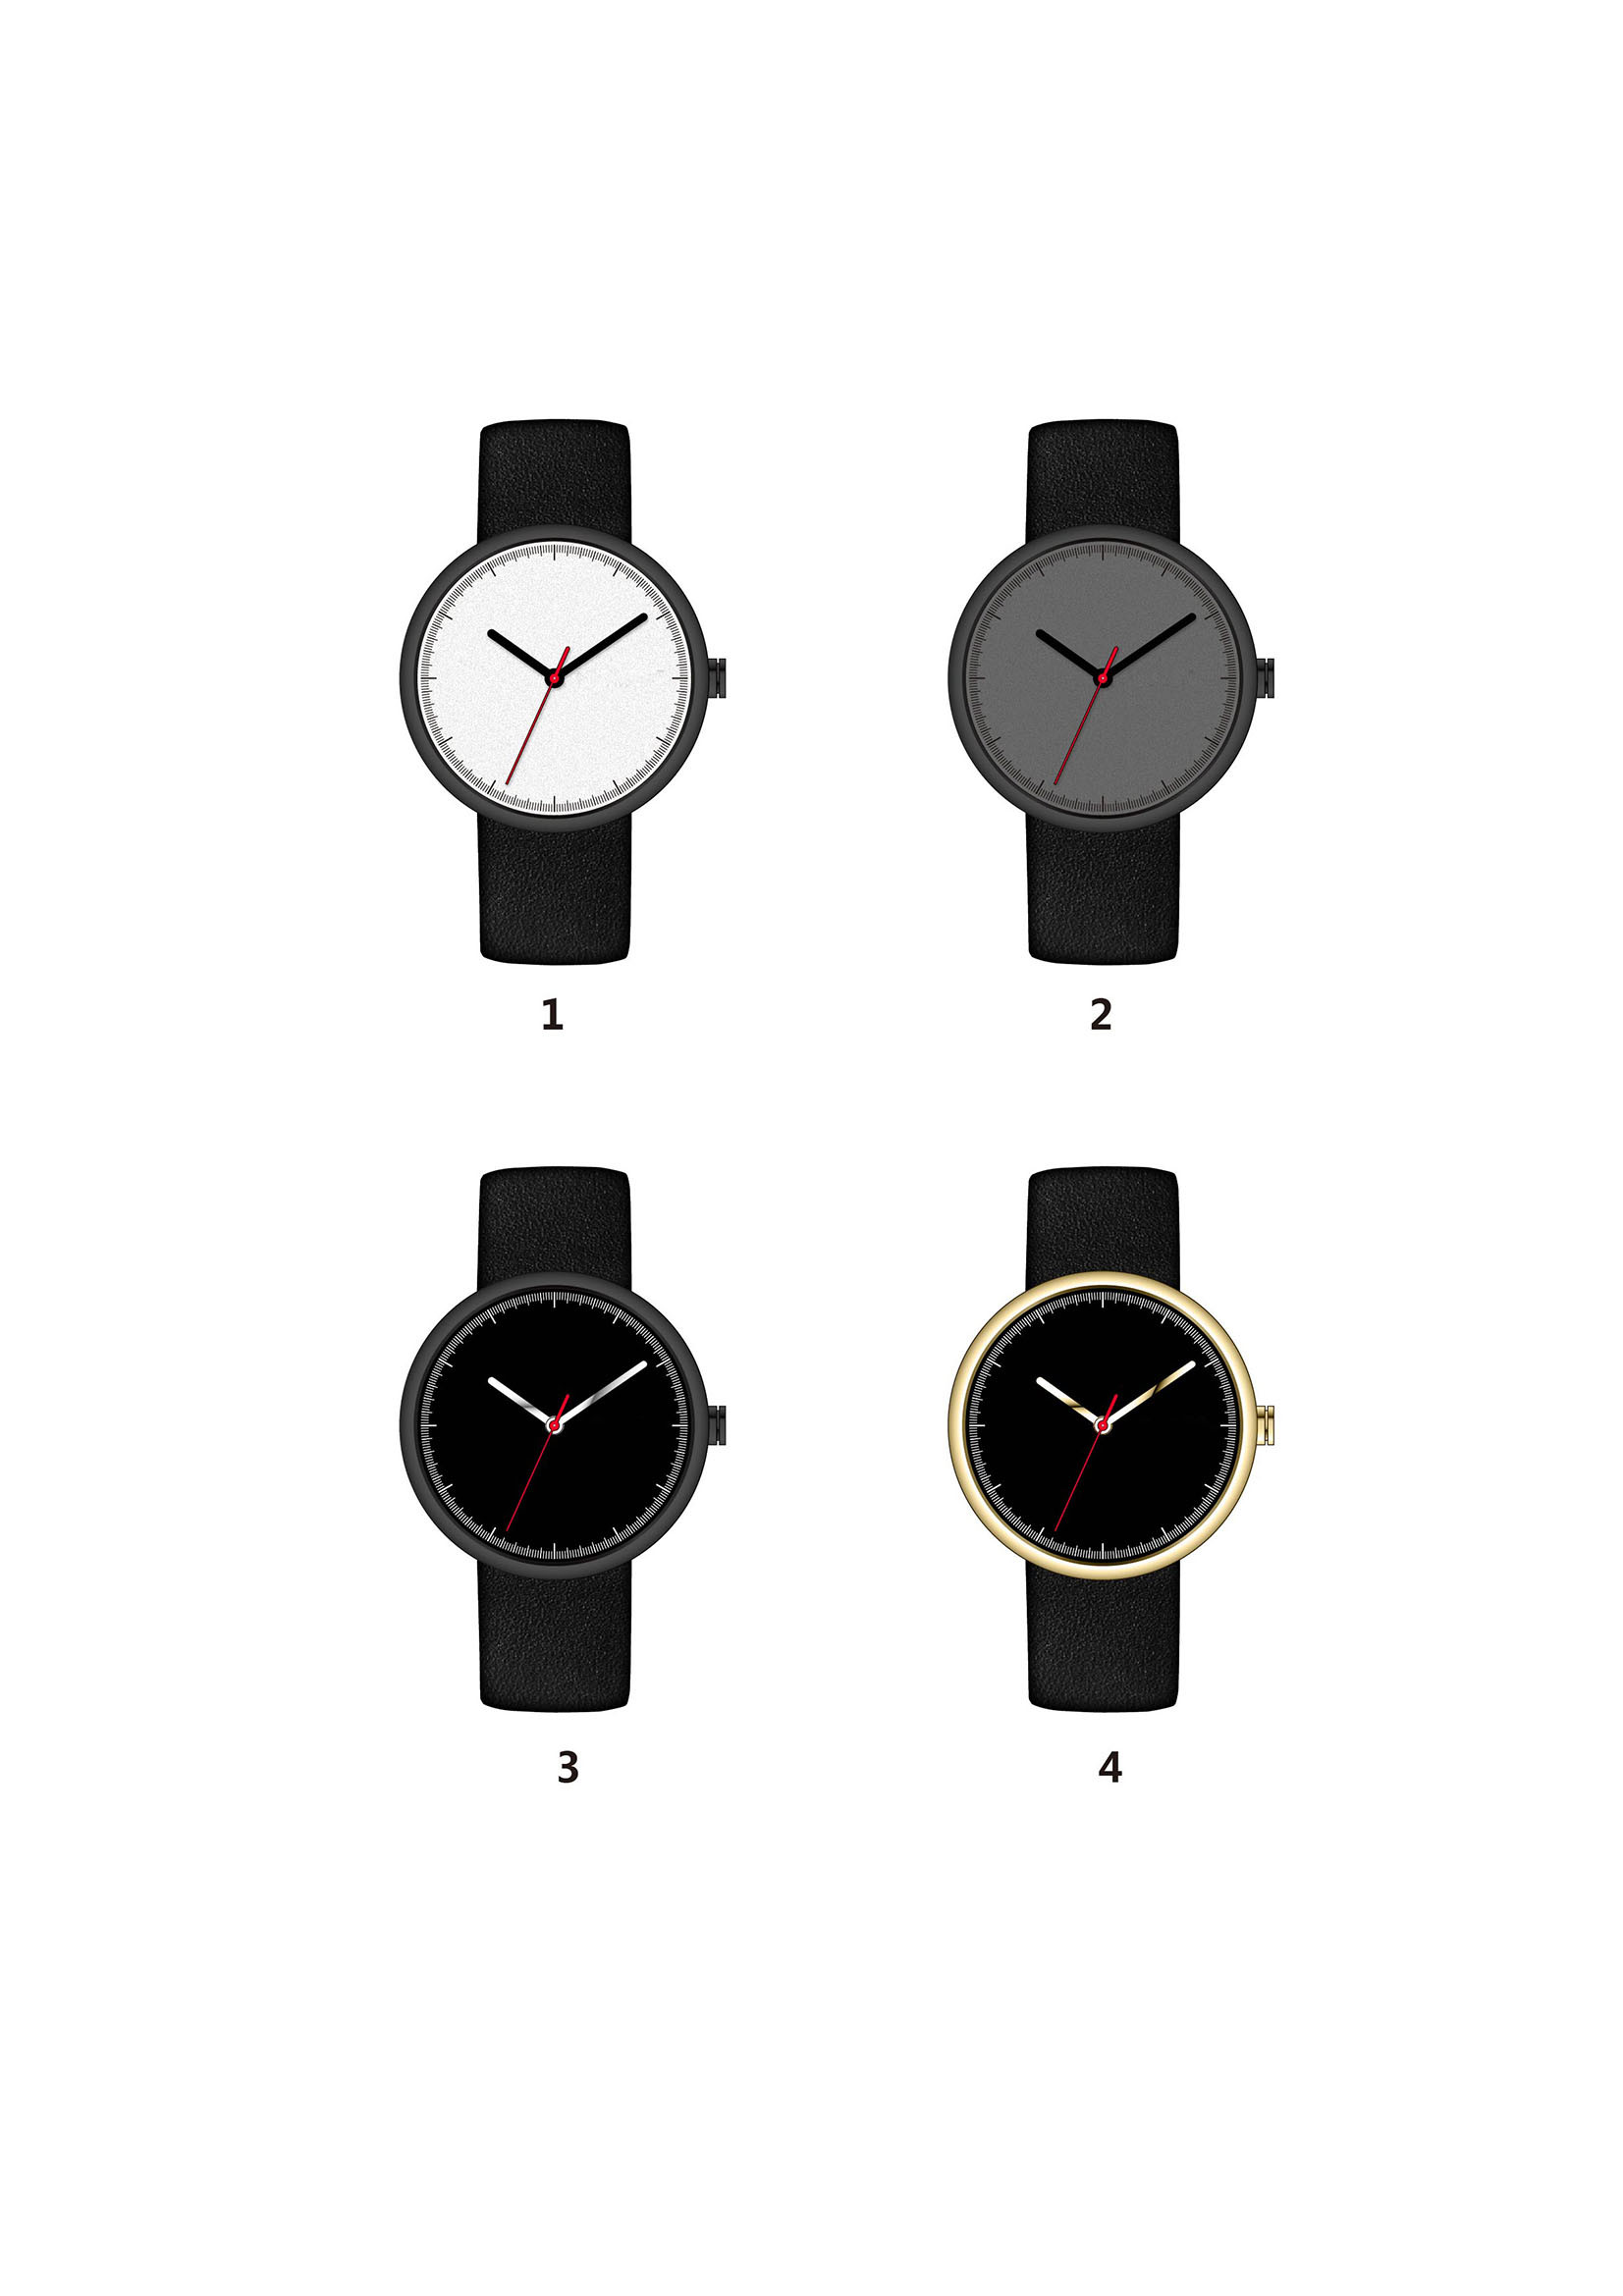 Simple Casual Men′s High-End Sports Watch ODM